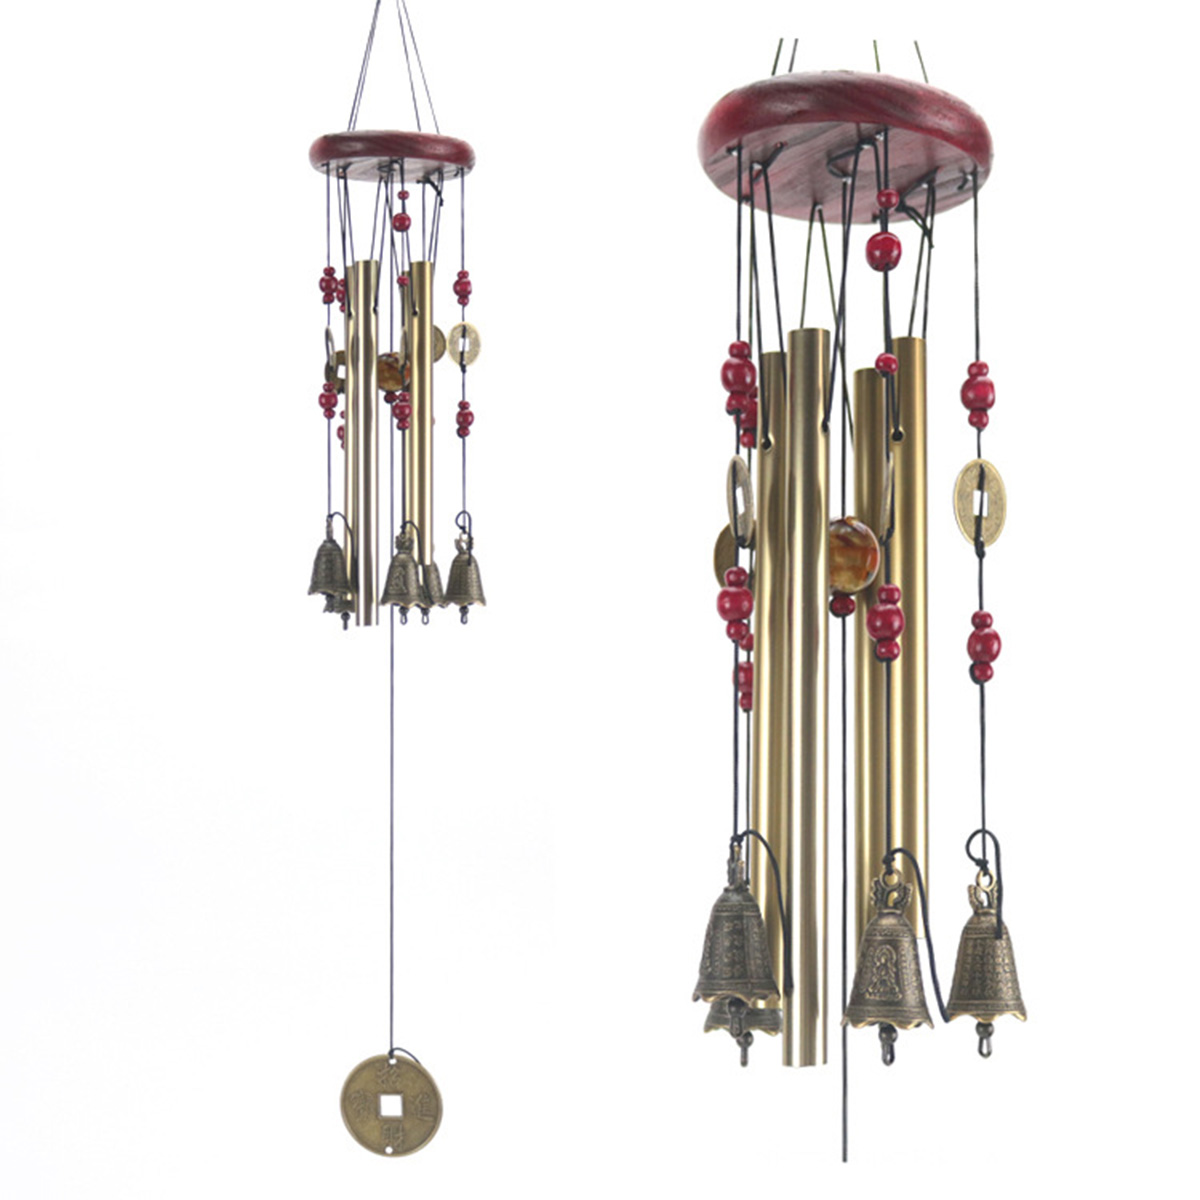 1Pc Antirust Wind Chimes Tubes Bells Wall Hanging Decorations Lovely Outdoor Living Yard Garden Ornaments Home Decor Gift